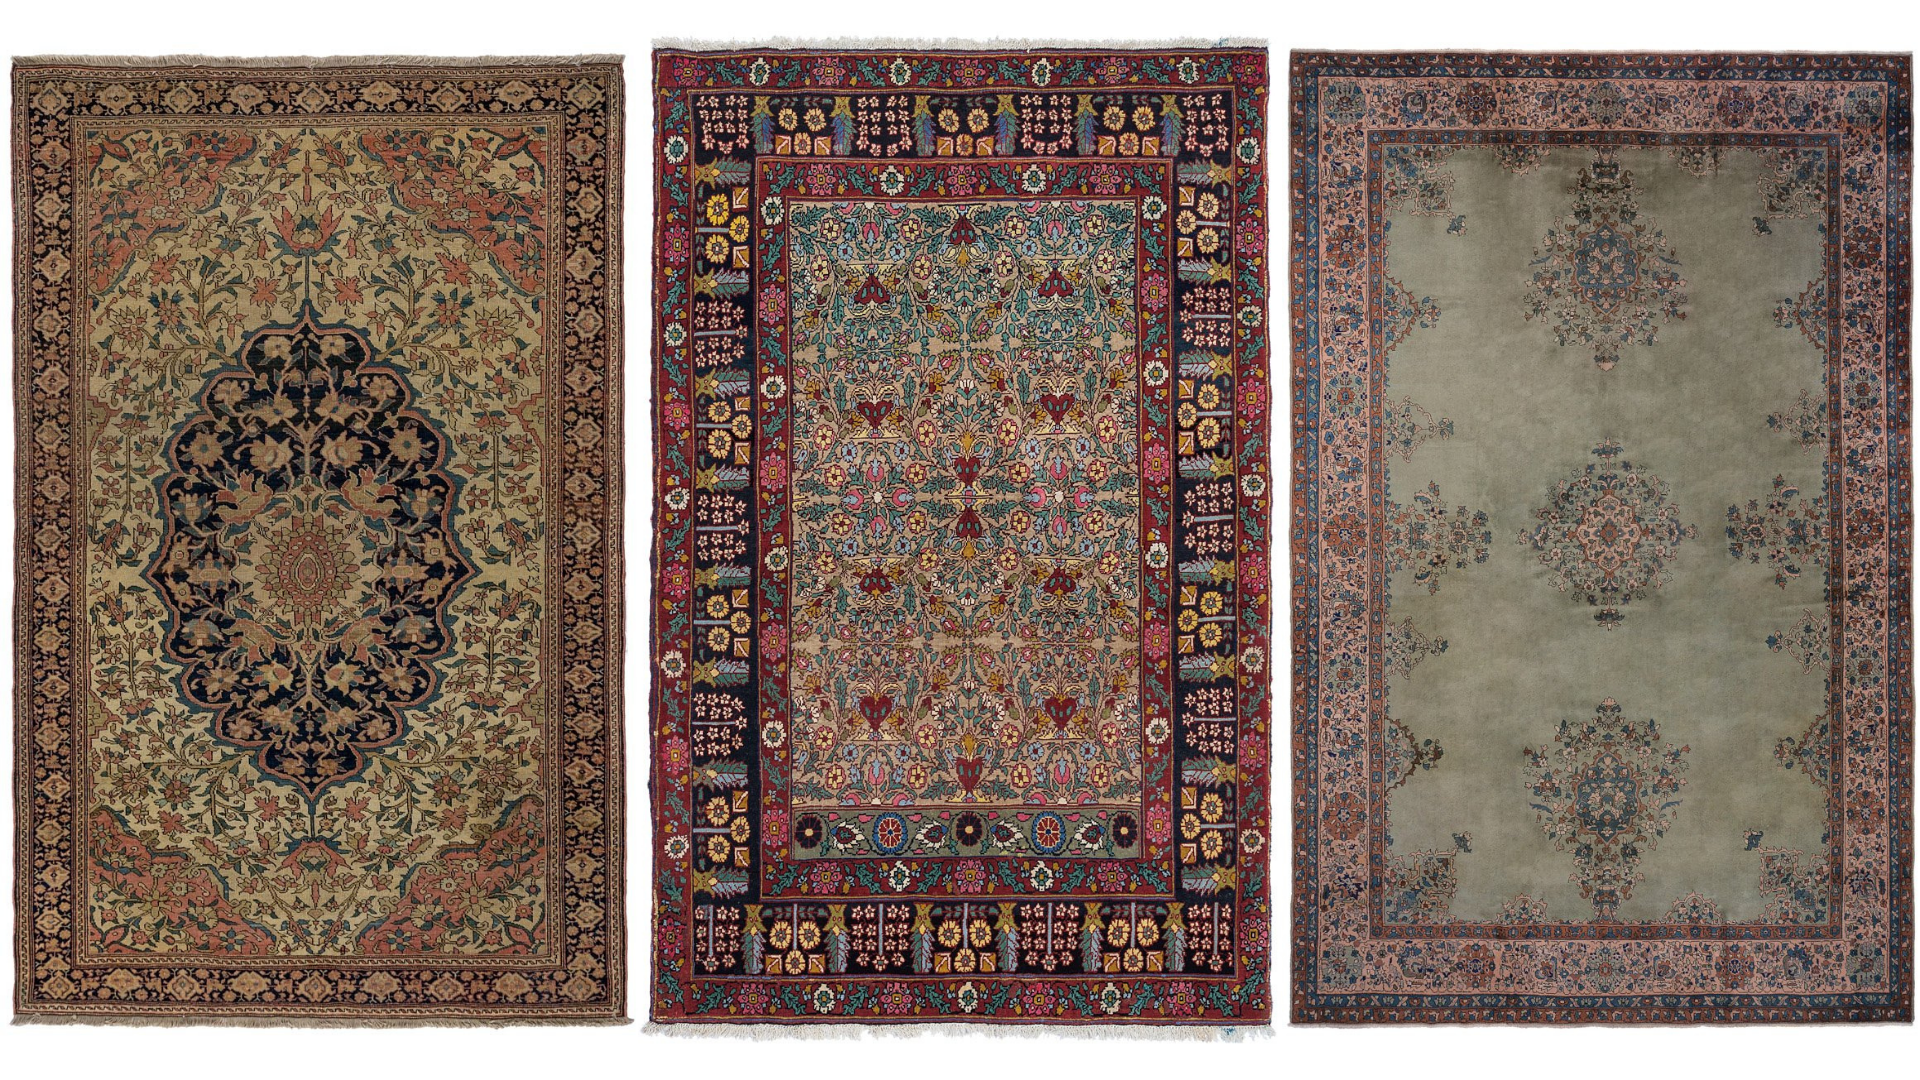 persian rugs, oriental rugs, london rugs, rug collections, winter decor, christmas decor, home decor, home accessories, interior design, design ideas